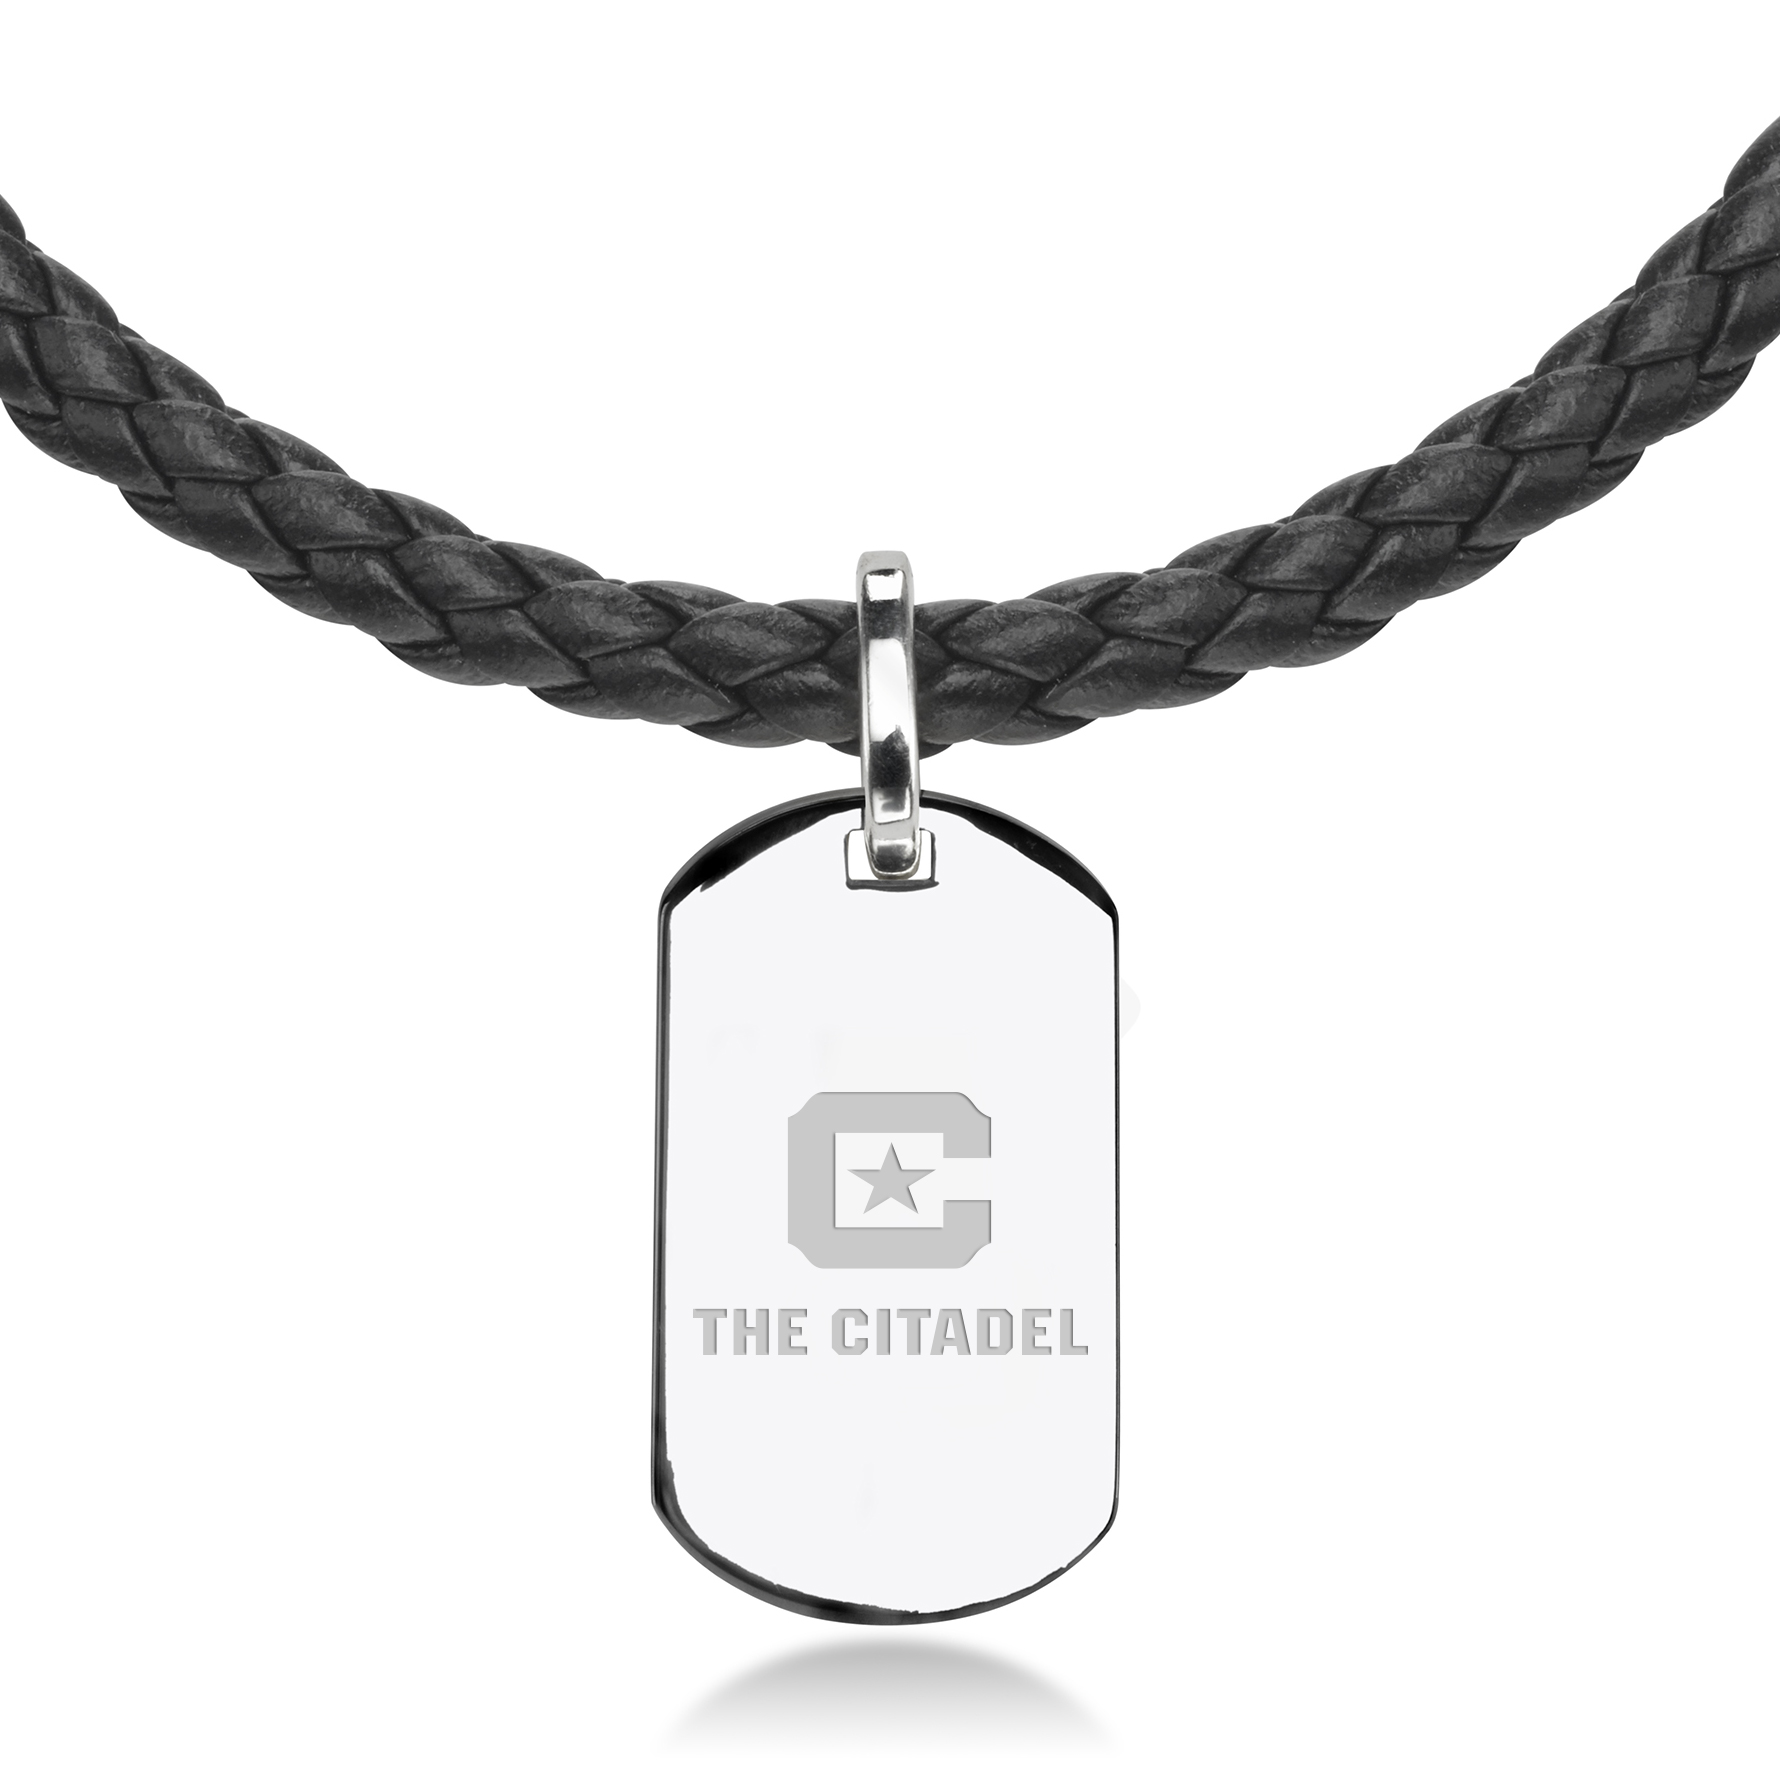 Citadel Leather Necklace with Sterling Dog Tag - Image 2